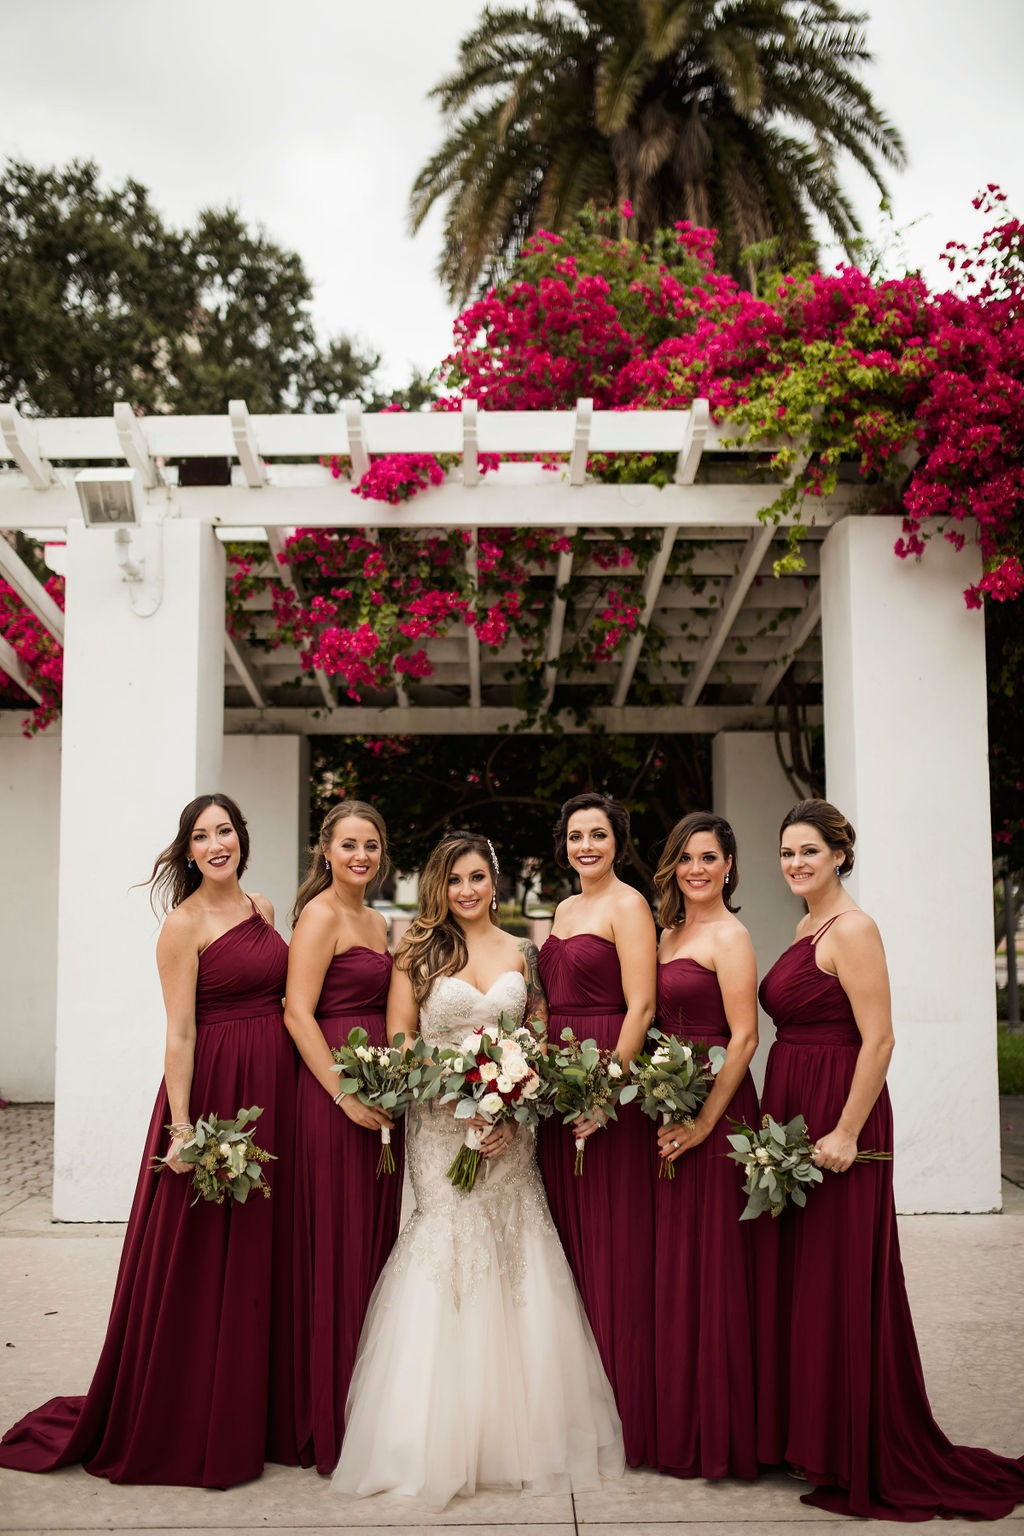 Bridesmaids in long burgundy gowns at St. Pete wedding